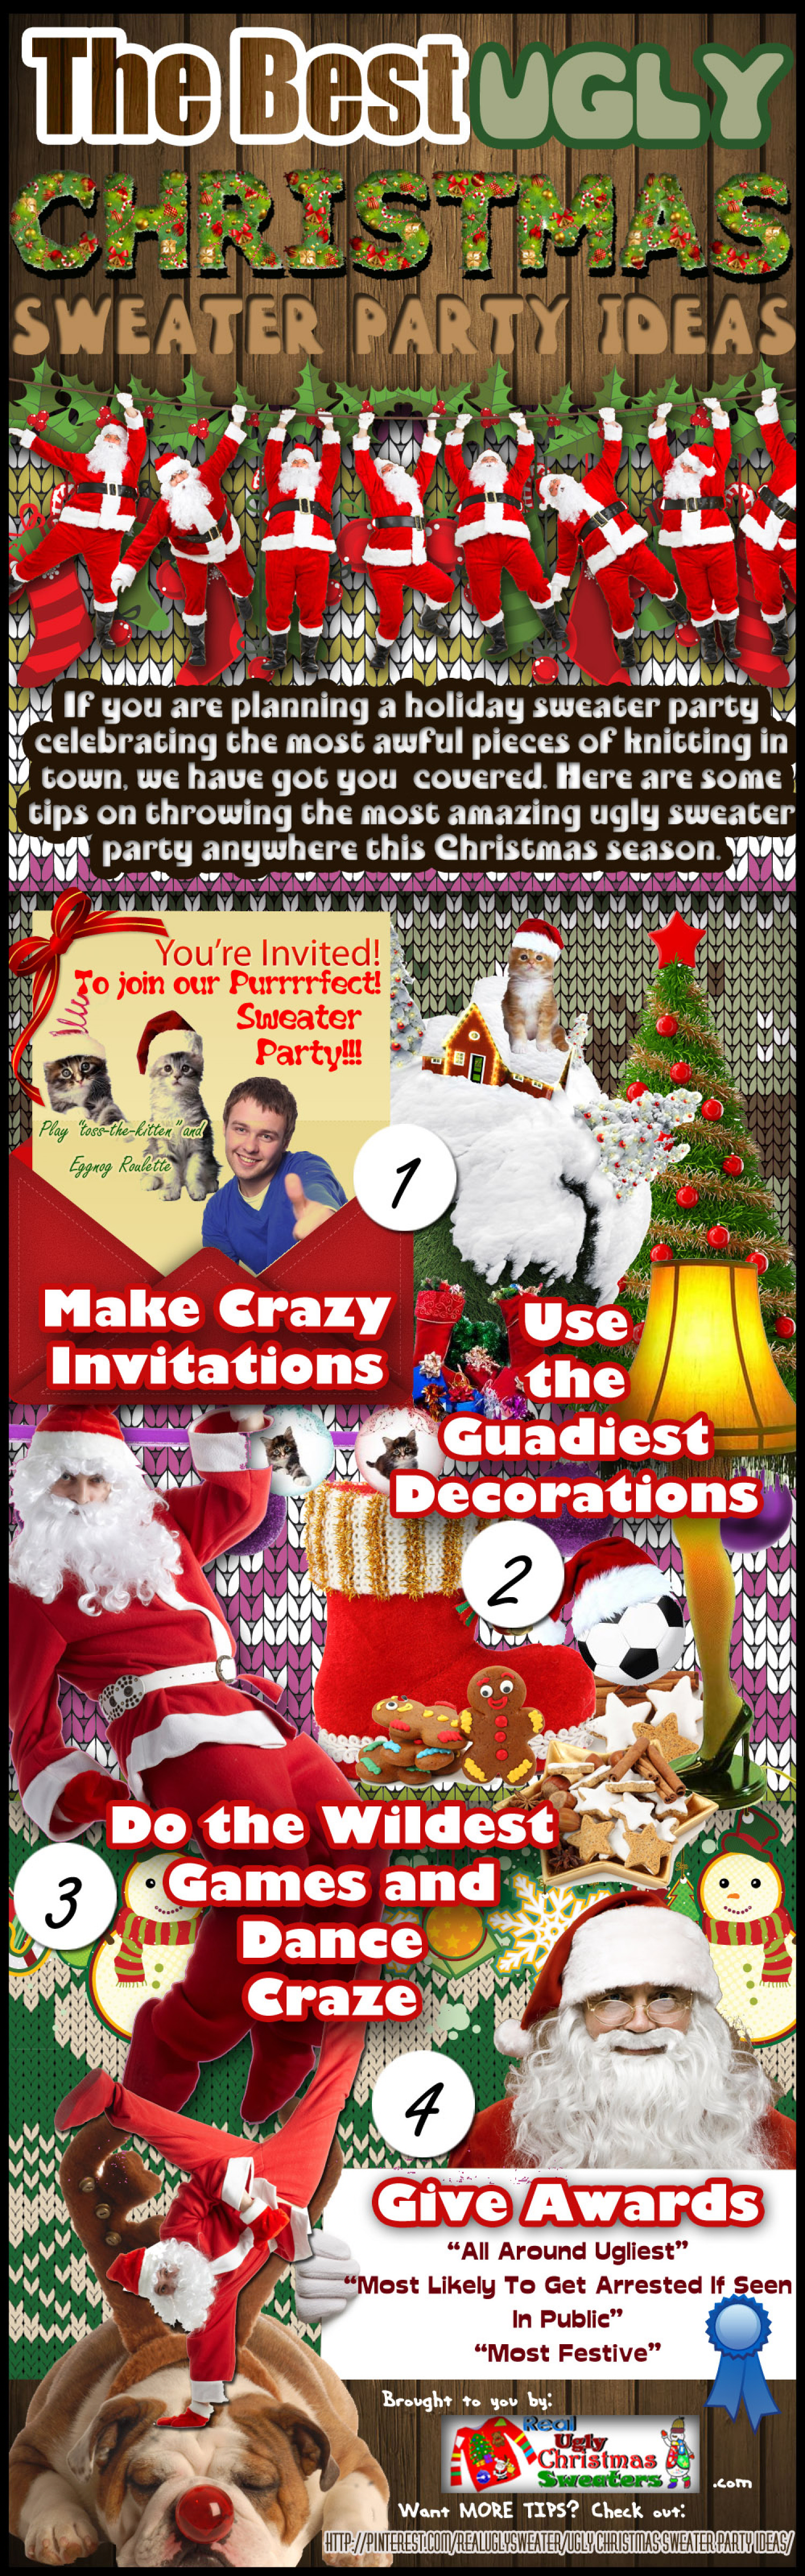 The Best Ugly Christmas Sweater Party Ideas Infographic